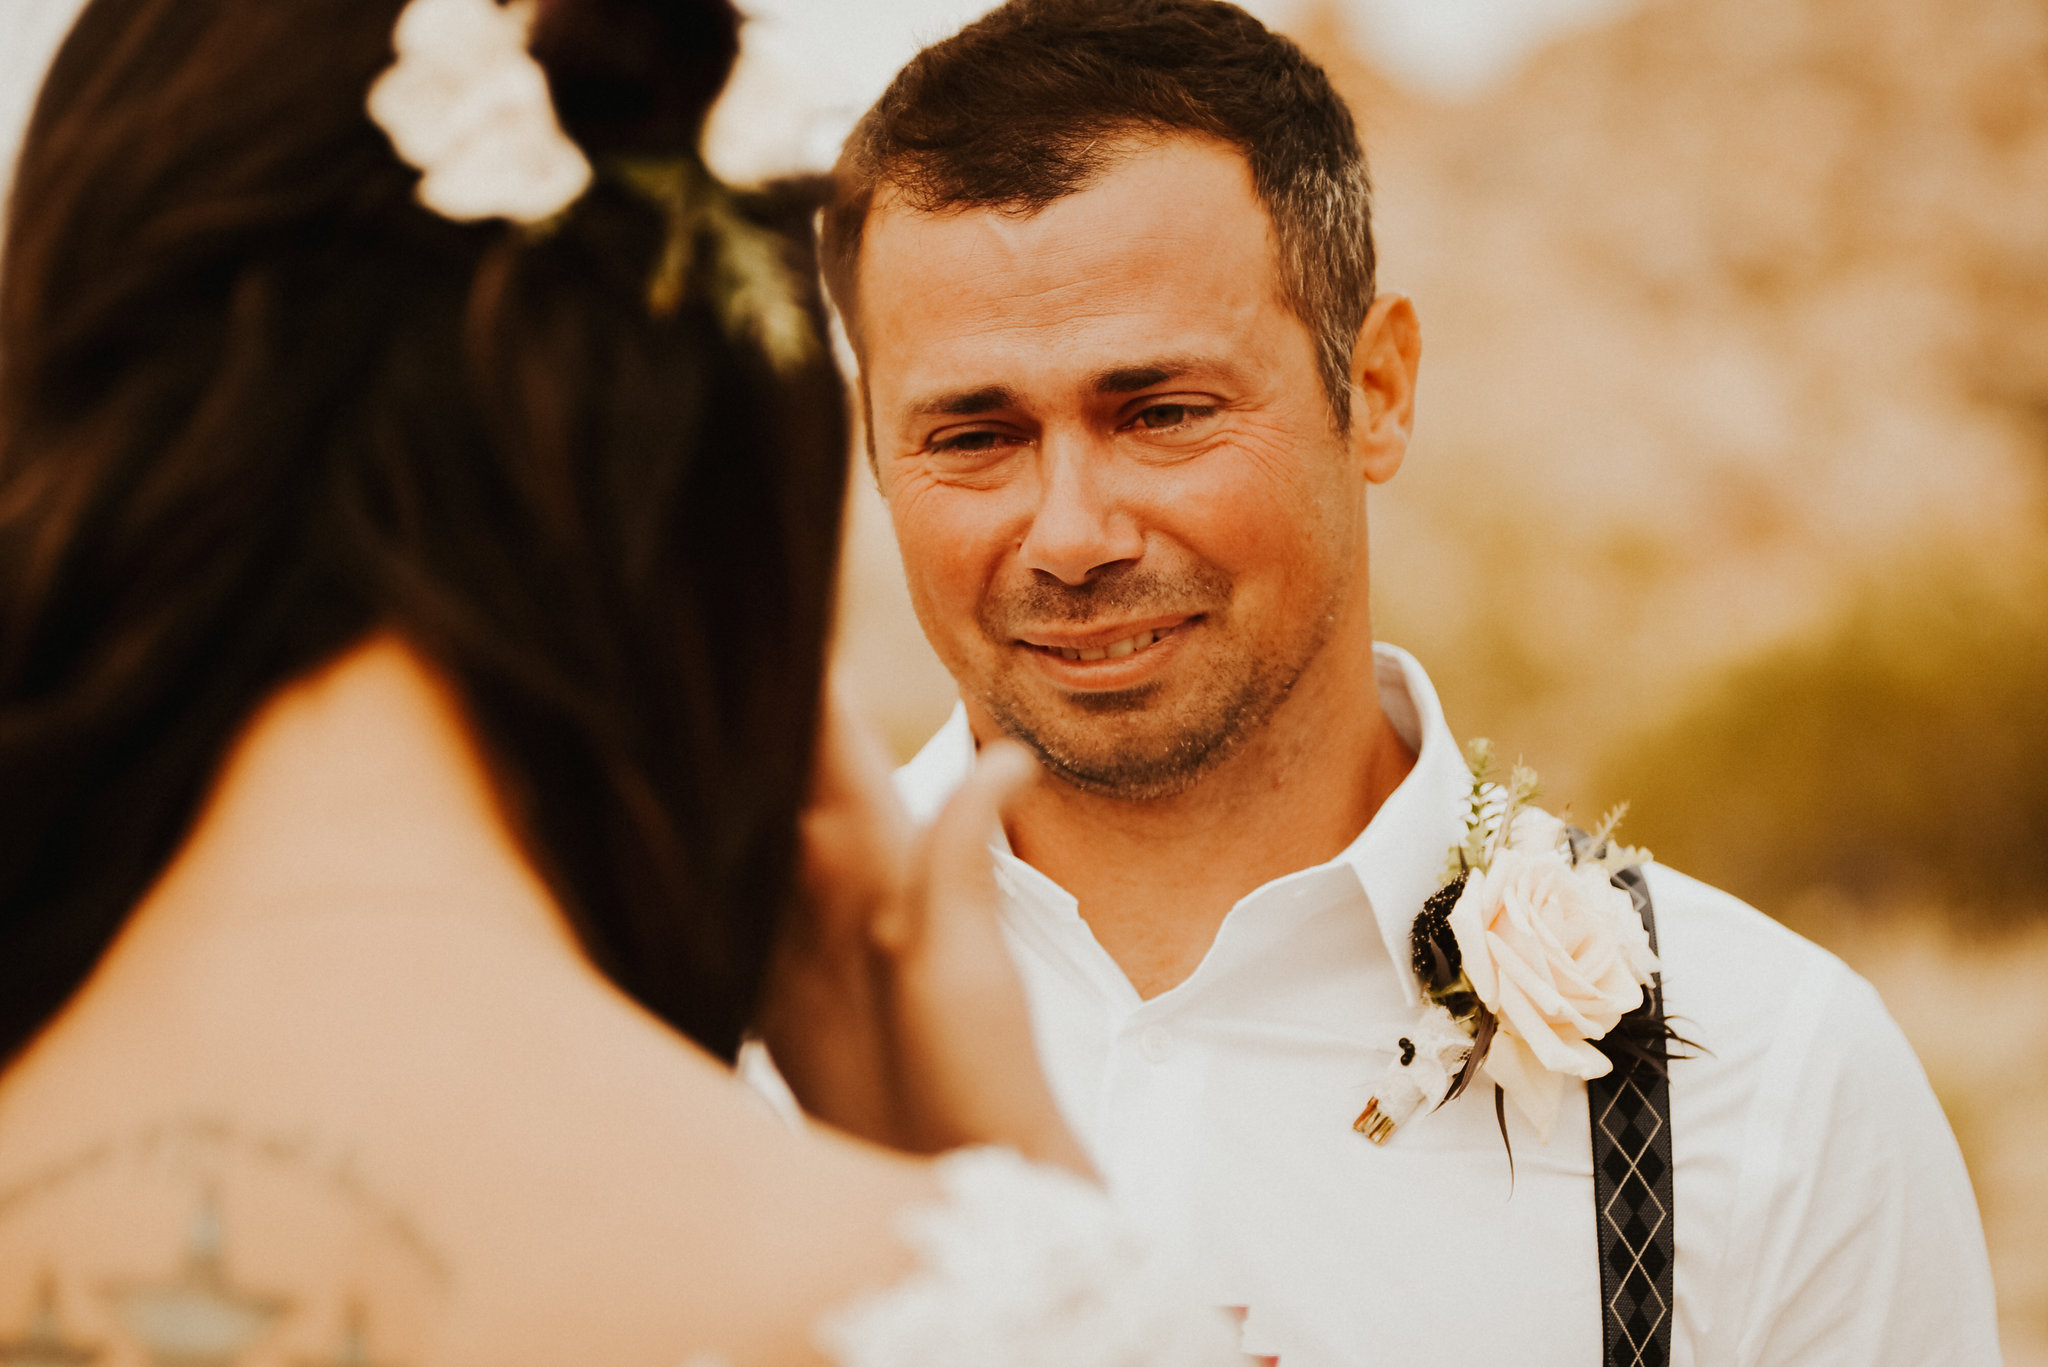 The most emotional and beautiful of ceremonies -